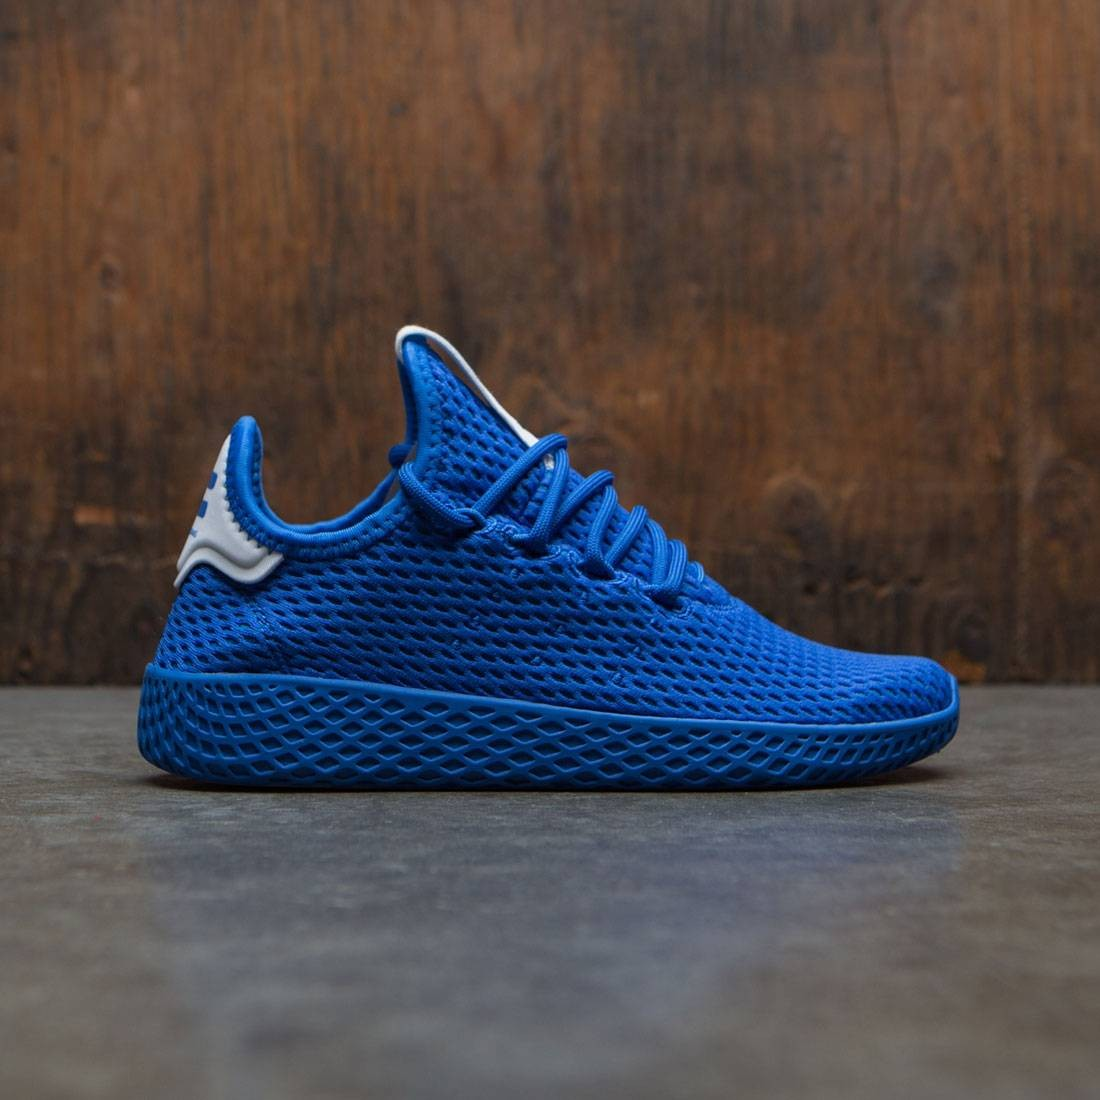 Adidas x Pharrell Williams Big Kids Tennis Hu (blue / footwear white)